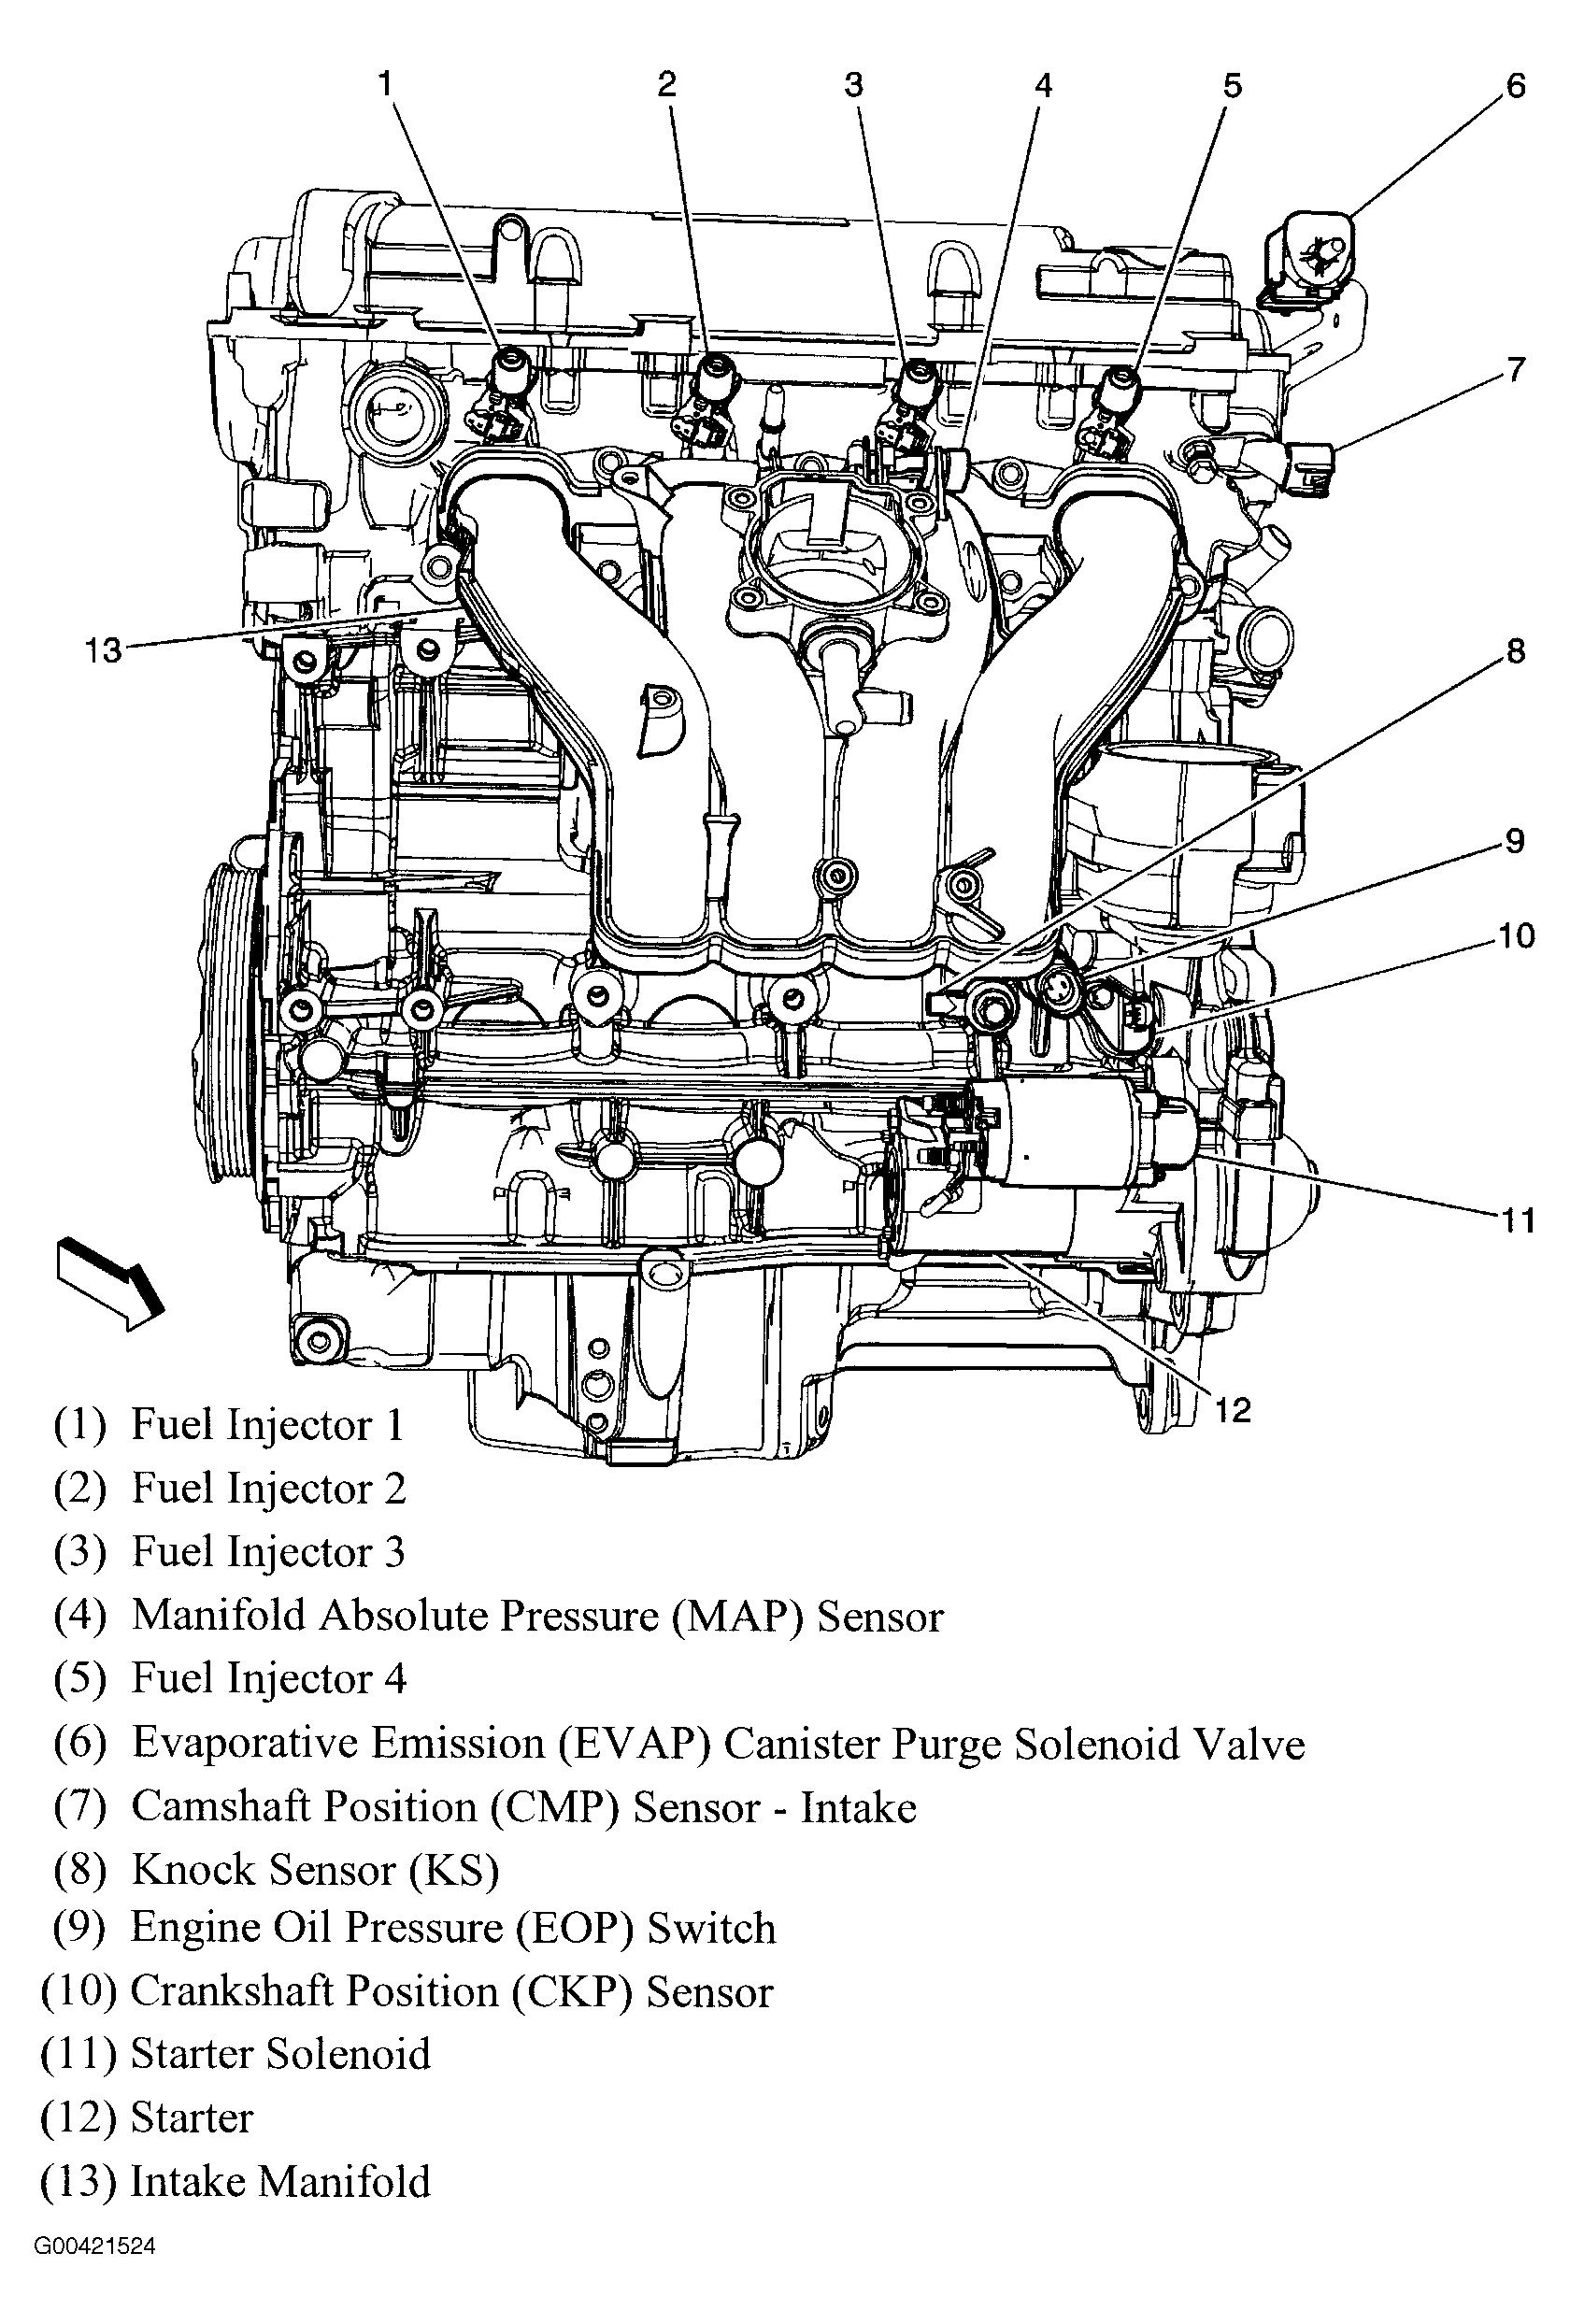 [CSDW_4250]   Chevrolet Hhr Engine Diagram - 1990 Chevy Blazer Wiring Diagram List Data  Schematic | Chevrolet Hhr Engine 2 2 Diagram |  | Santuariomadredelbuonconsiglio.it